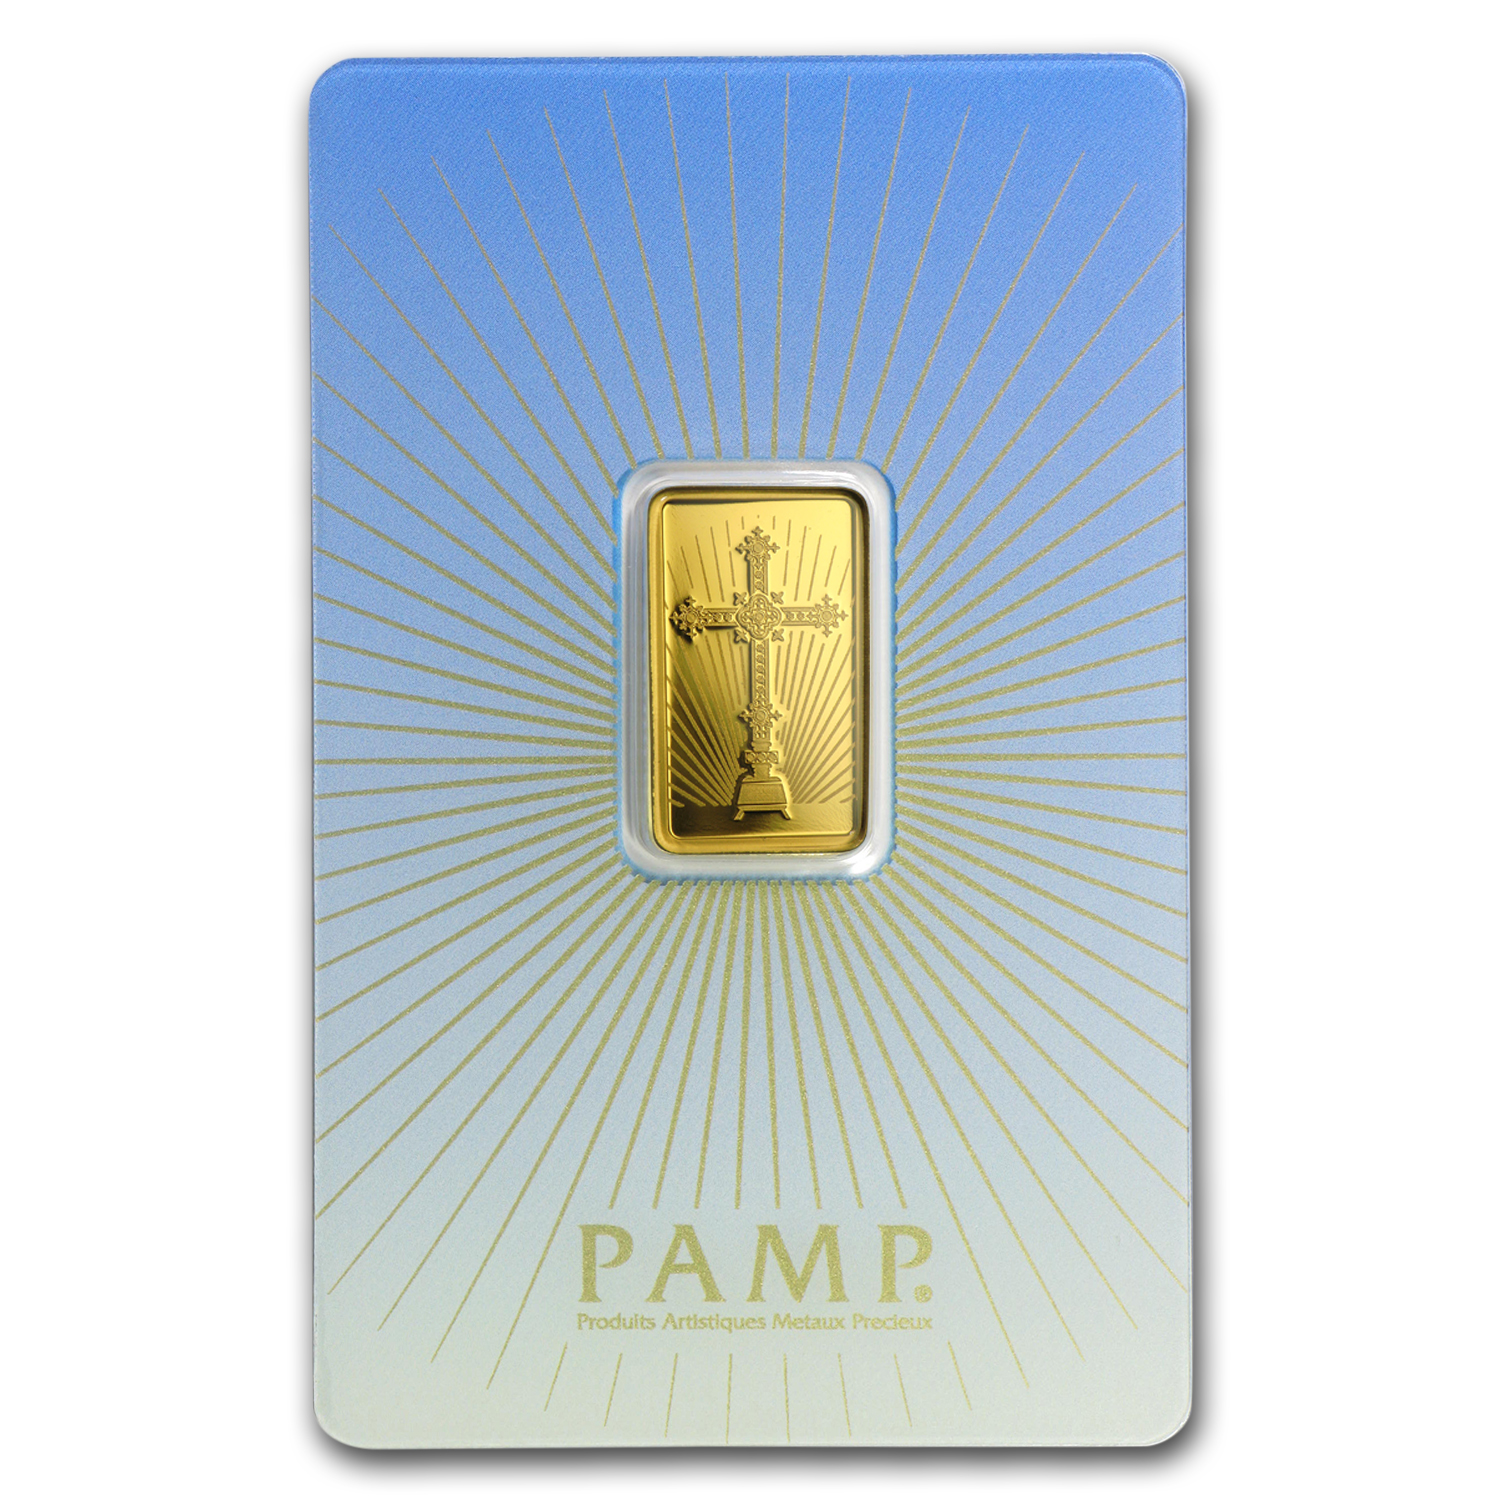 5 G Gold Bar Pamp Suisse Religious Series Romanesque